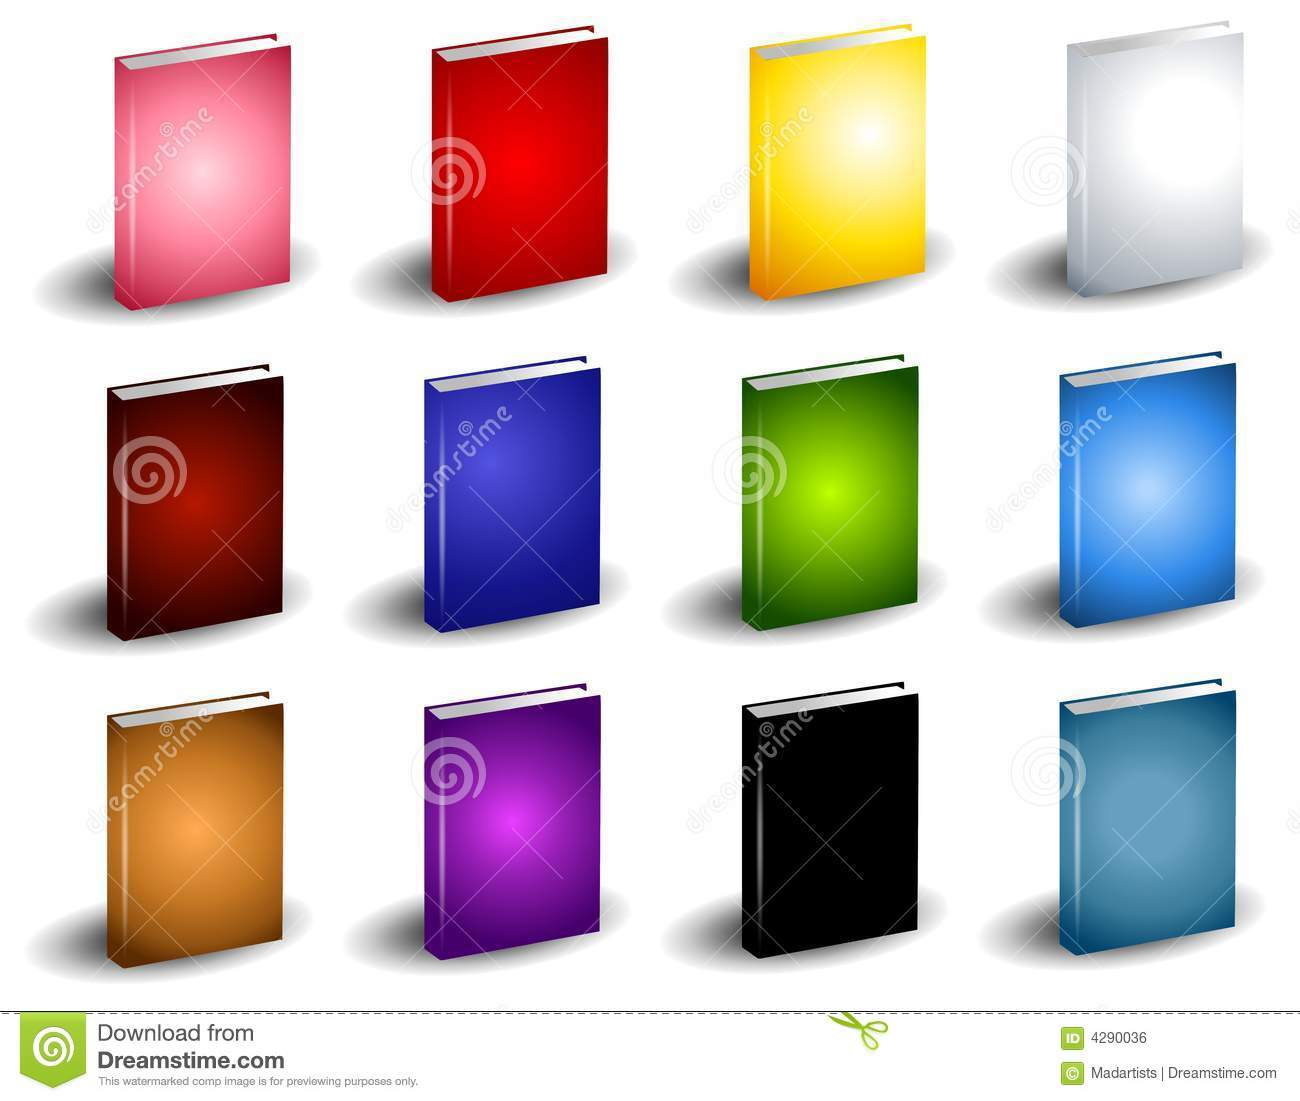 Book Cover Images Royalty Free : Colorful book covers royalty free stock image